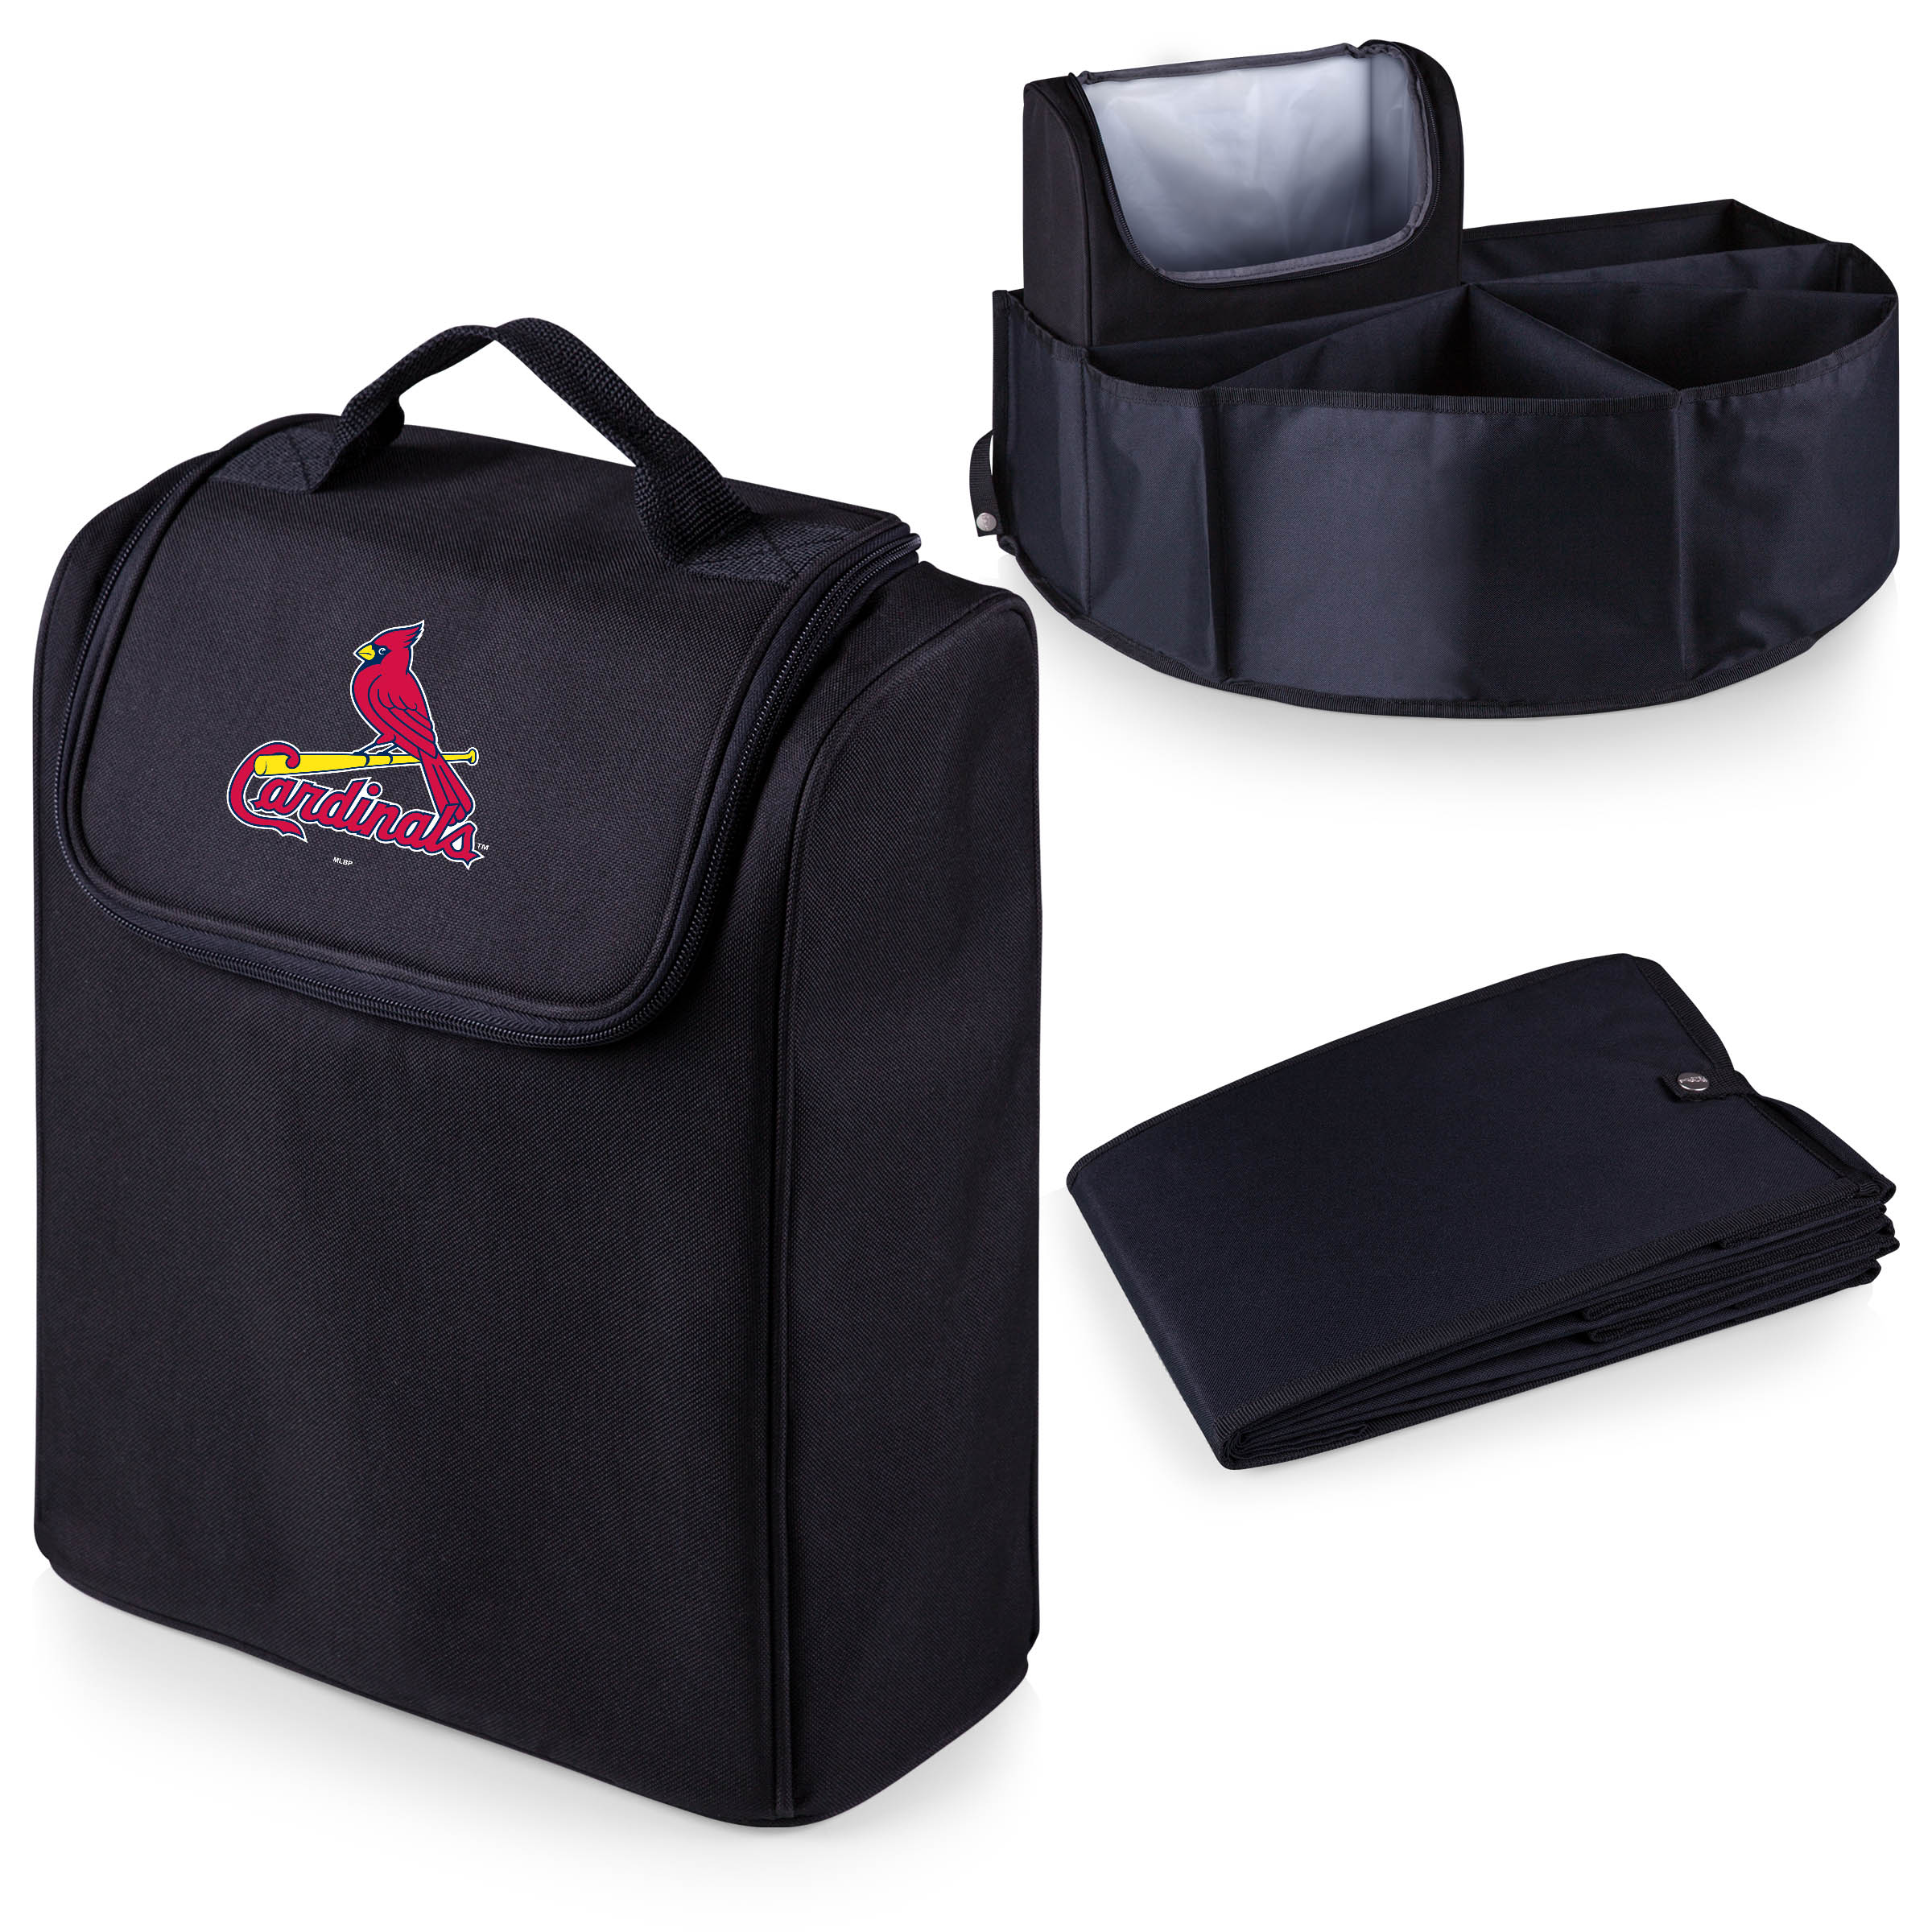 St. Louis Cardinals Trunk Boss Organizer with Cooler - Black - No Size